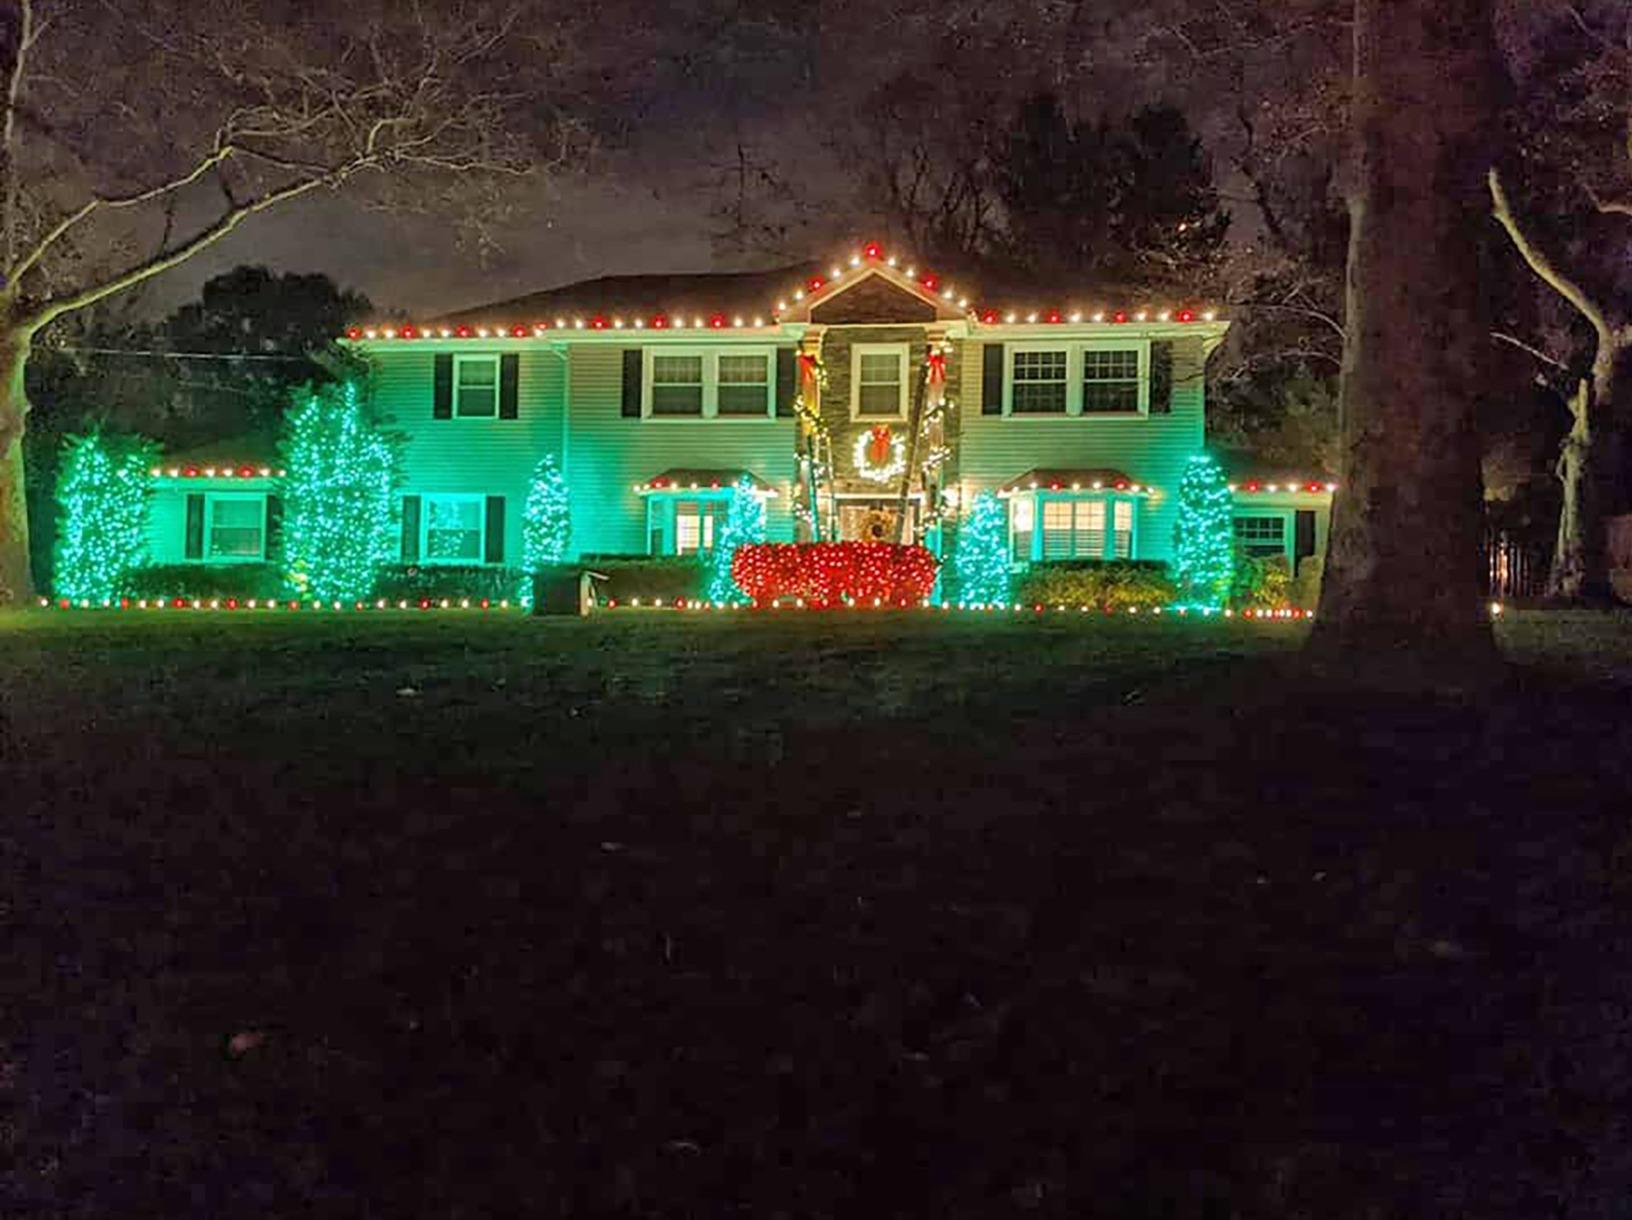 Showing the Green in Middletown, NJ - After Photo